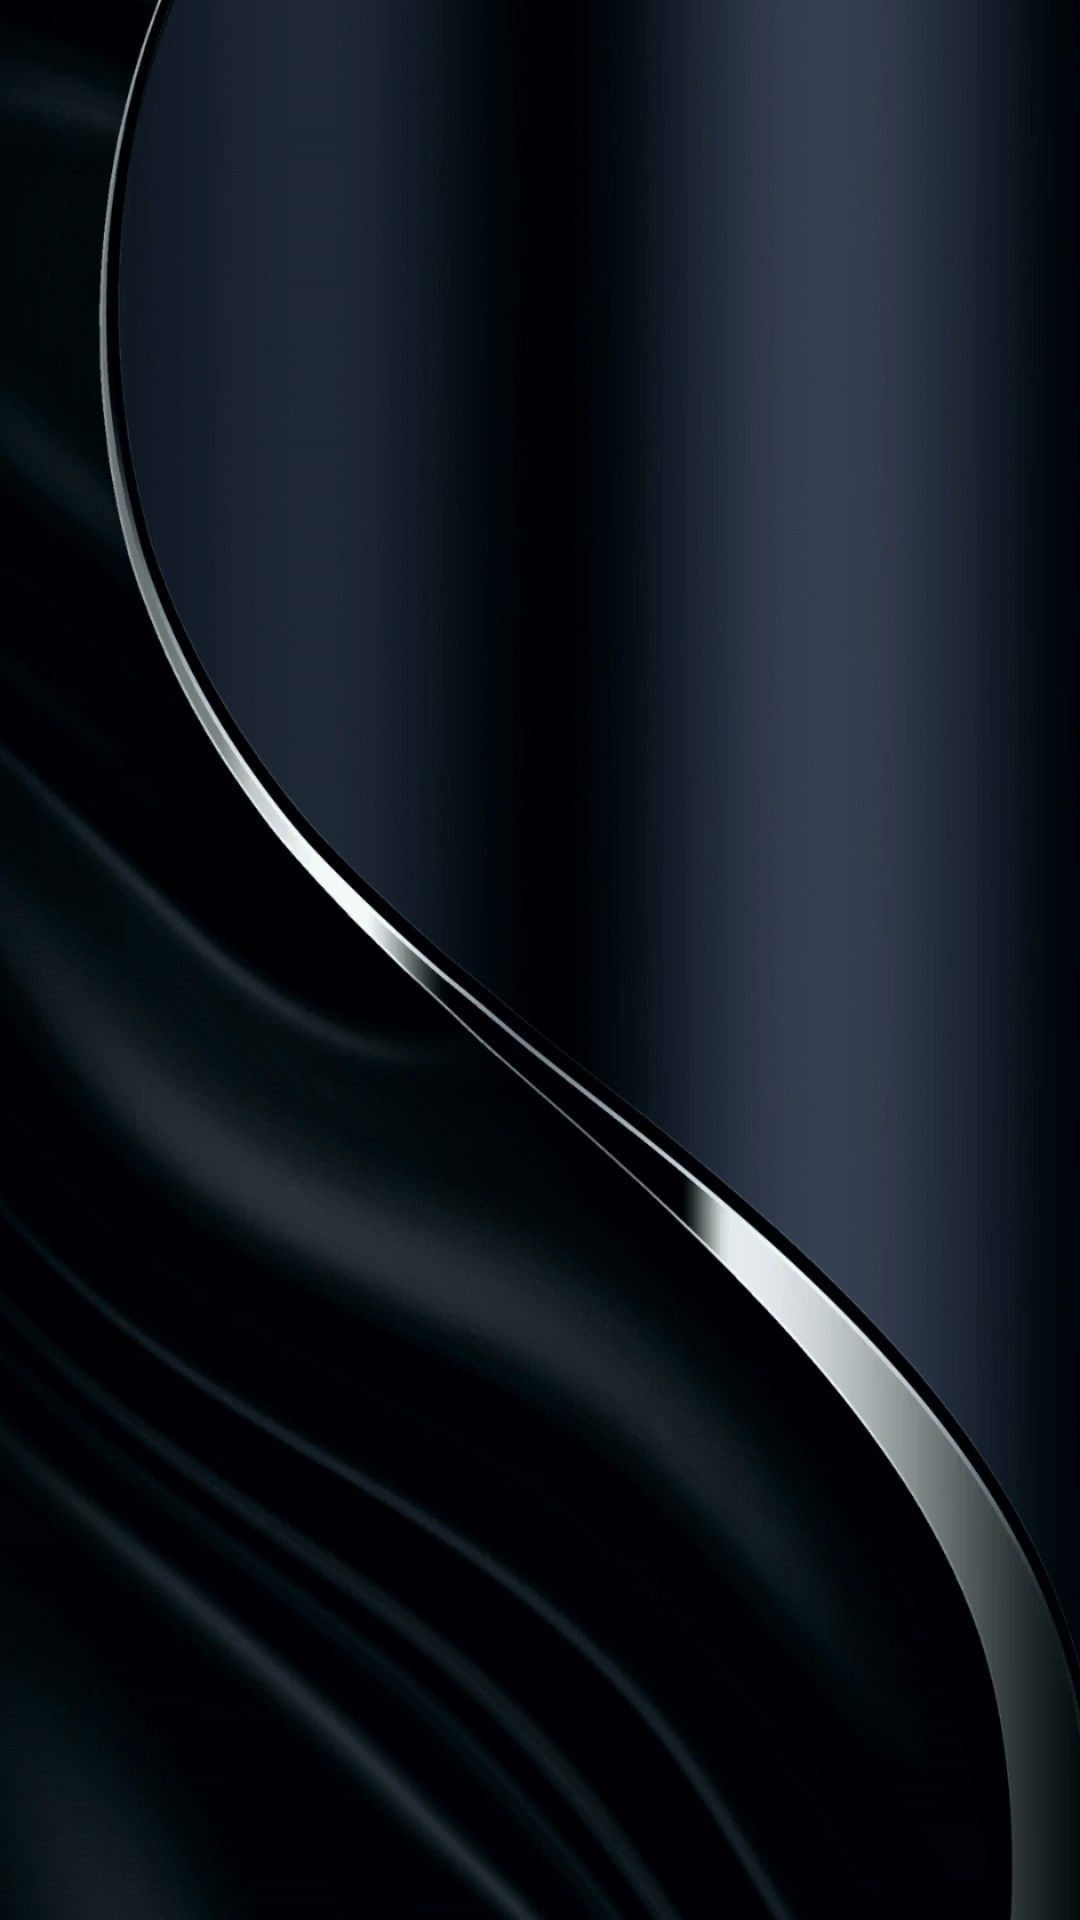 Abstract Blue Silver Wallpaper Mobile Silver Wallpaper Abstract Iphone Wallpaper Dark Phone Wallpapers